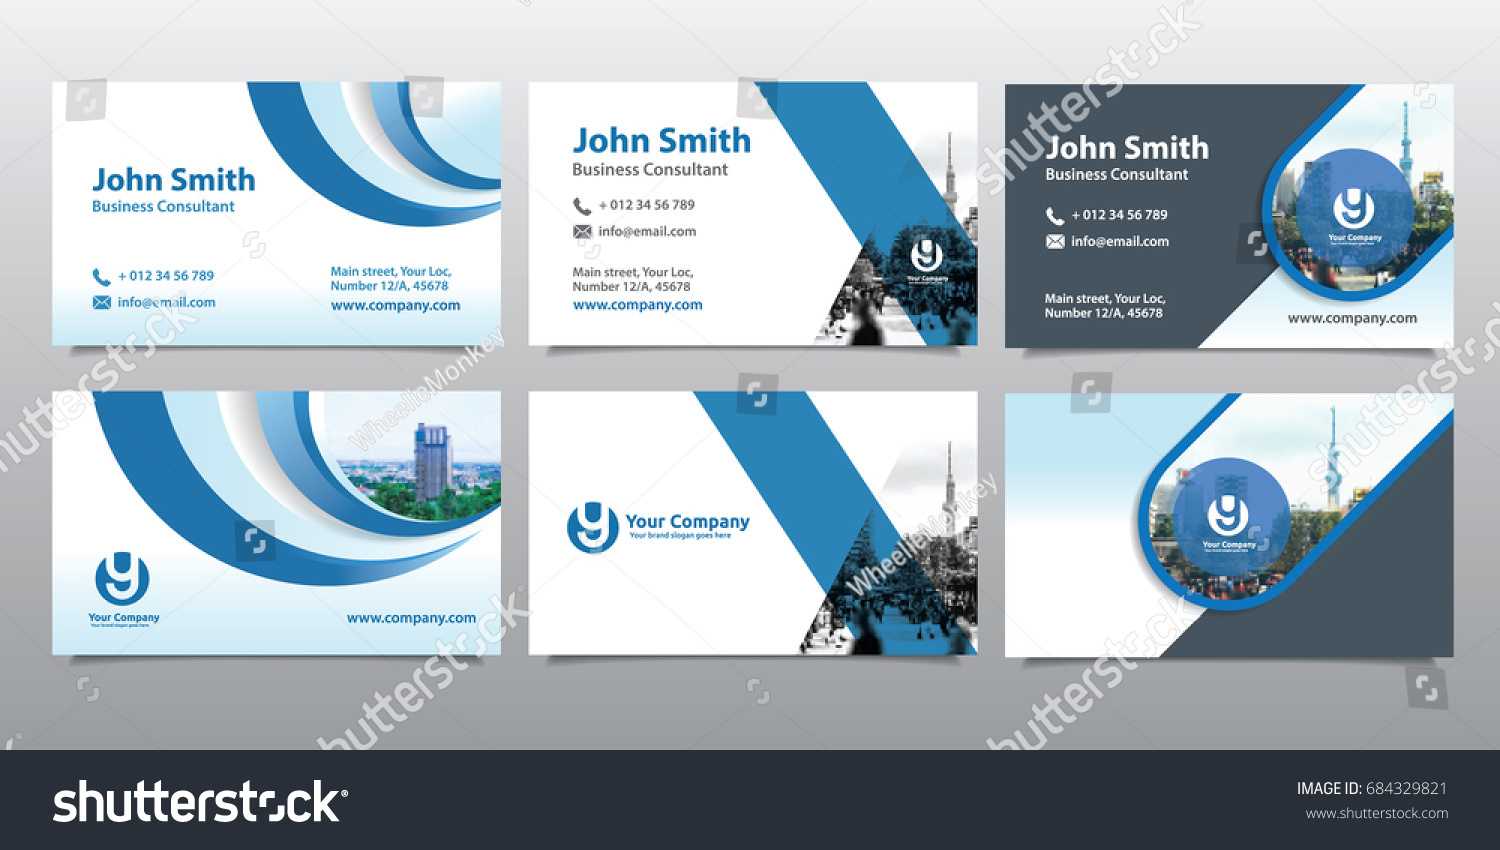 City Background Business Card Design Template Stock Photo (Photo ...